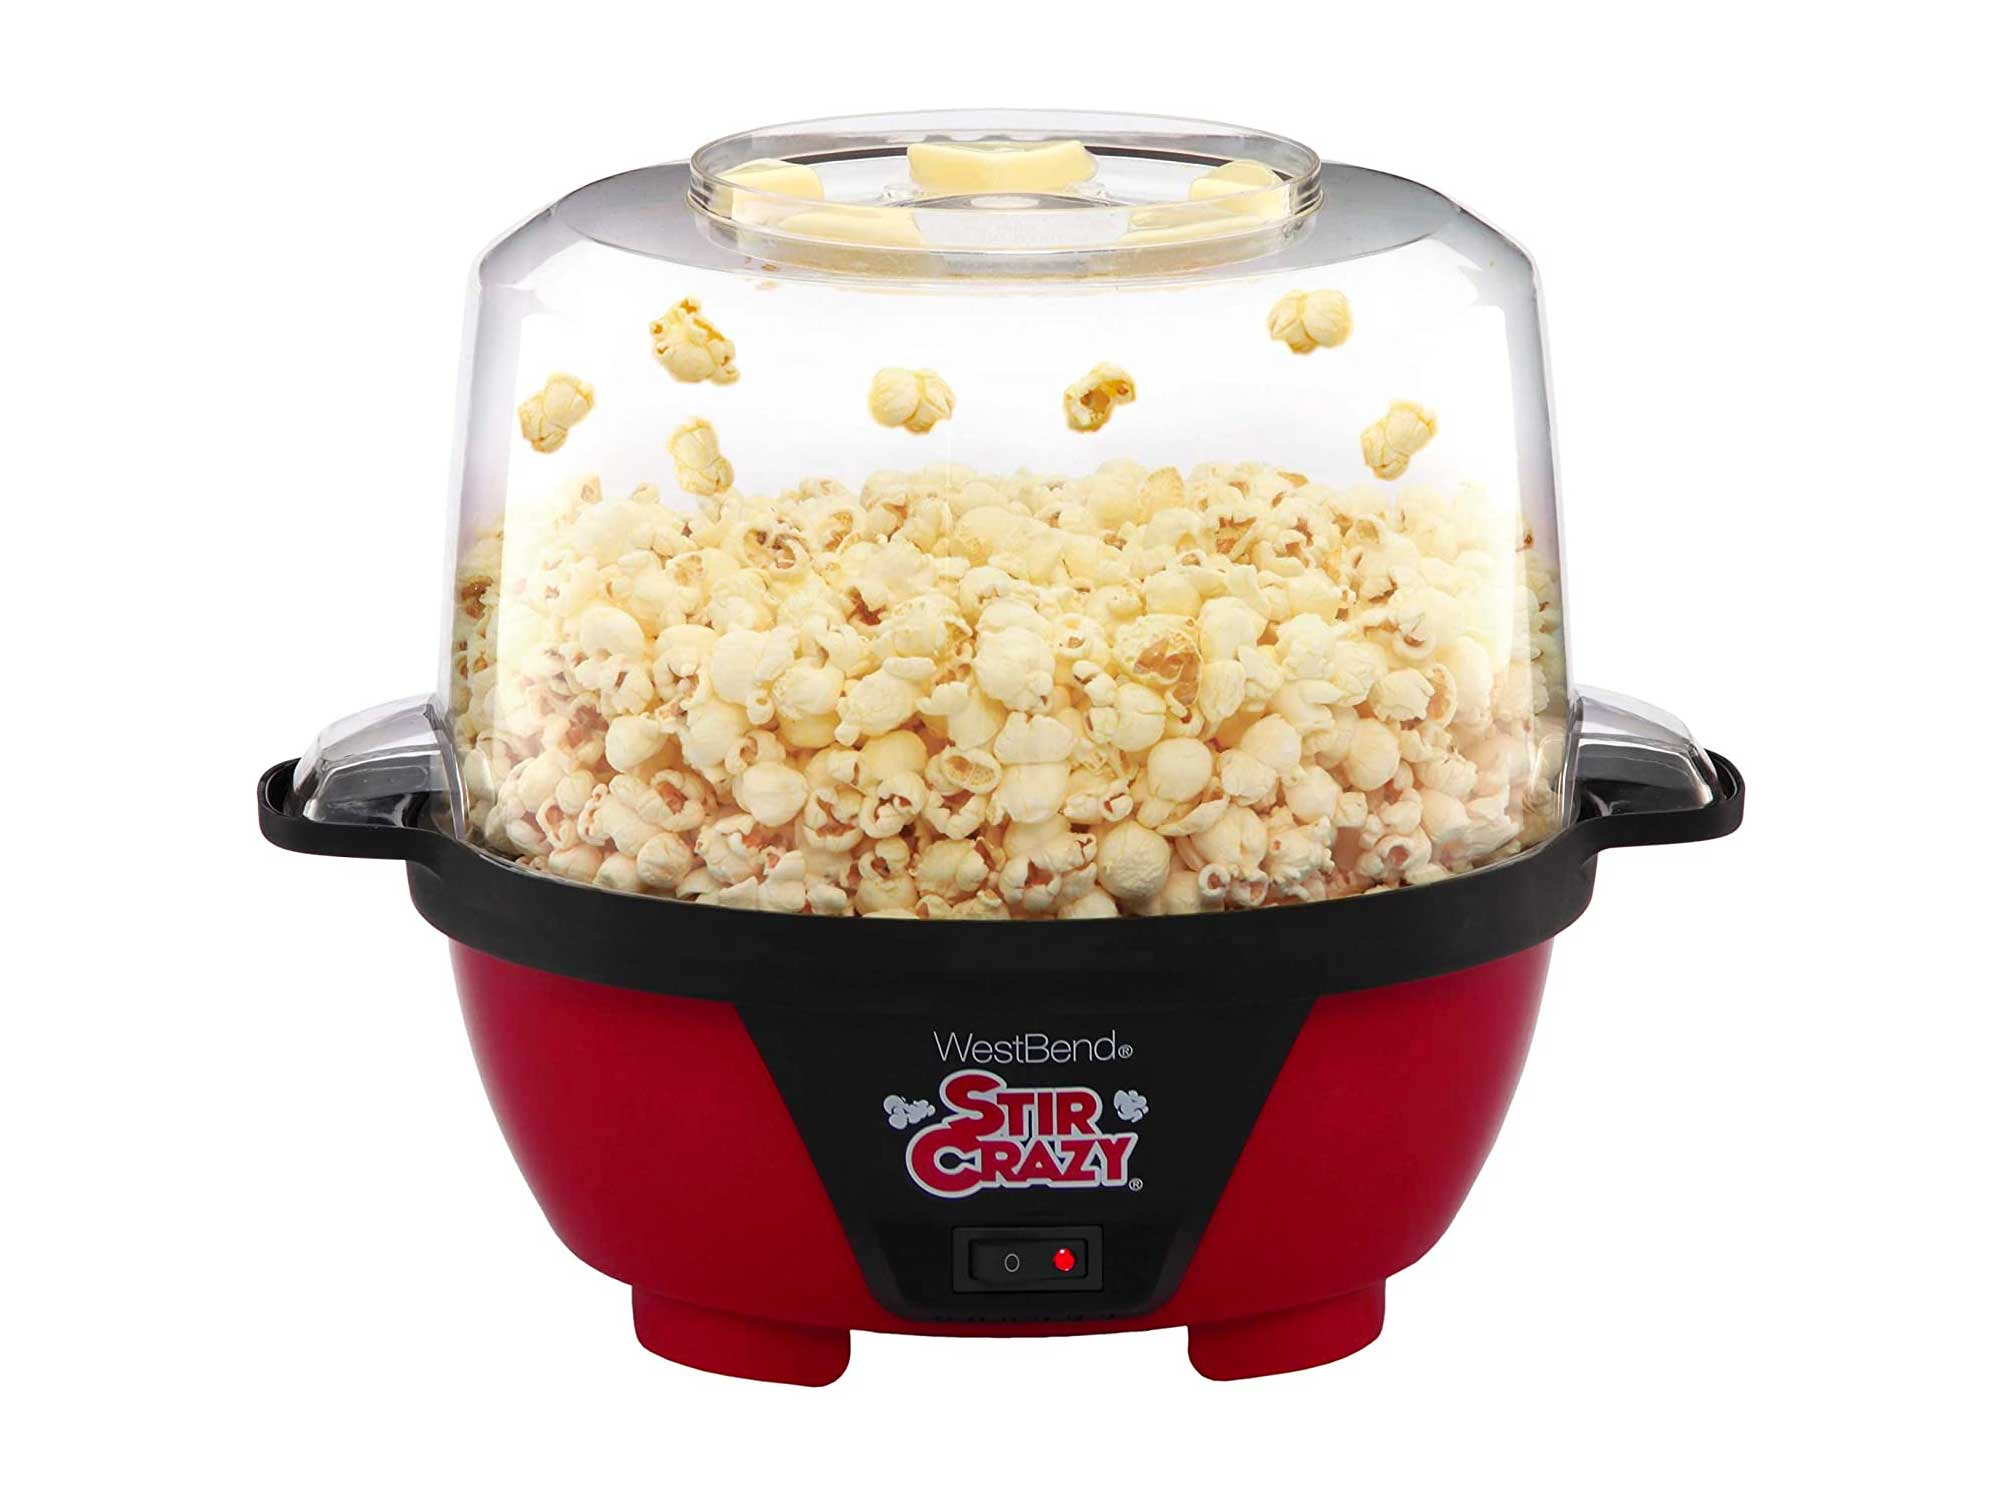 West Bend Stir Crazy Electric Hot Oil Popcorn Popper Machine Offers Large Lid for Serving Bowl and Convenient Storage, 6-Quart, Red